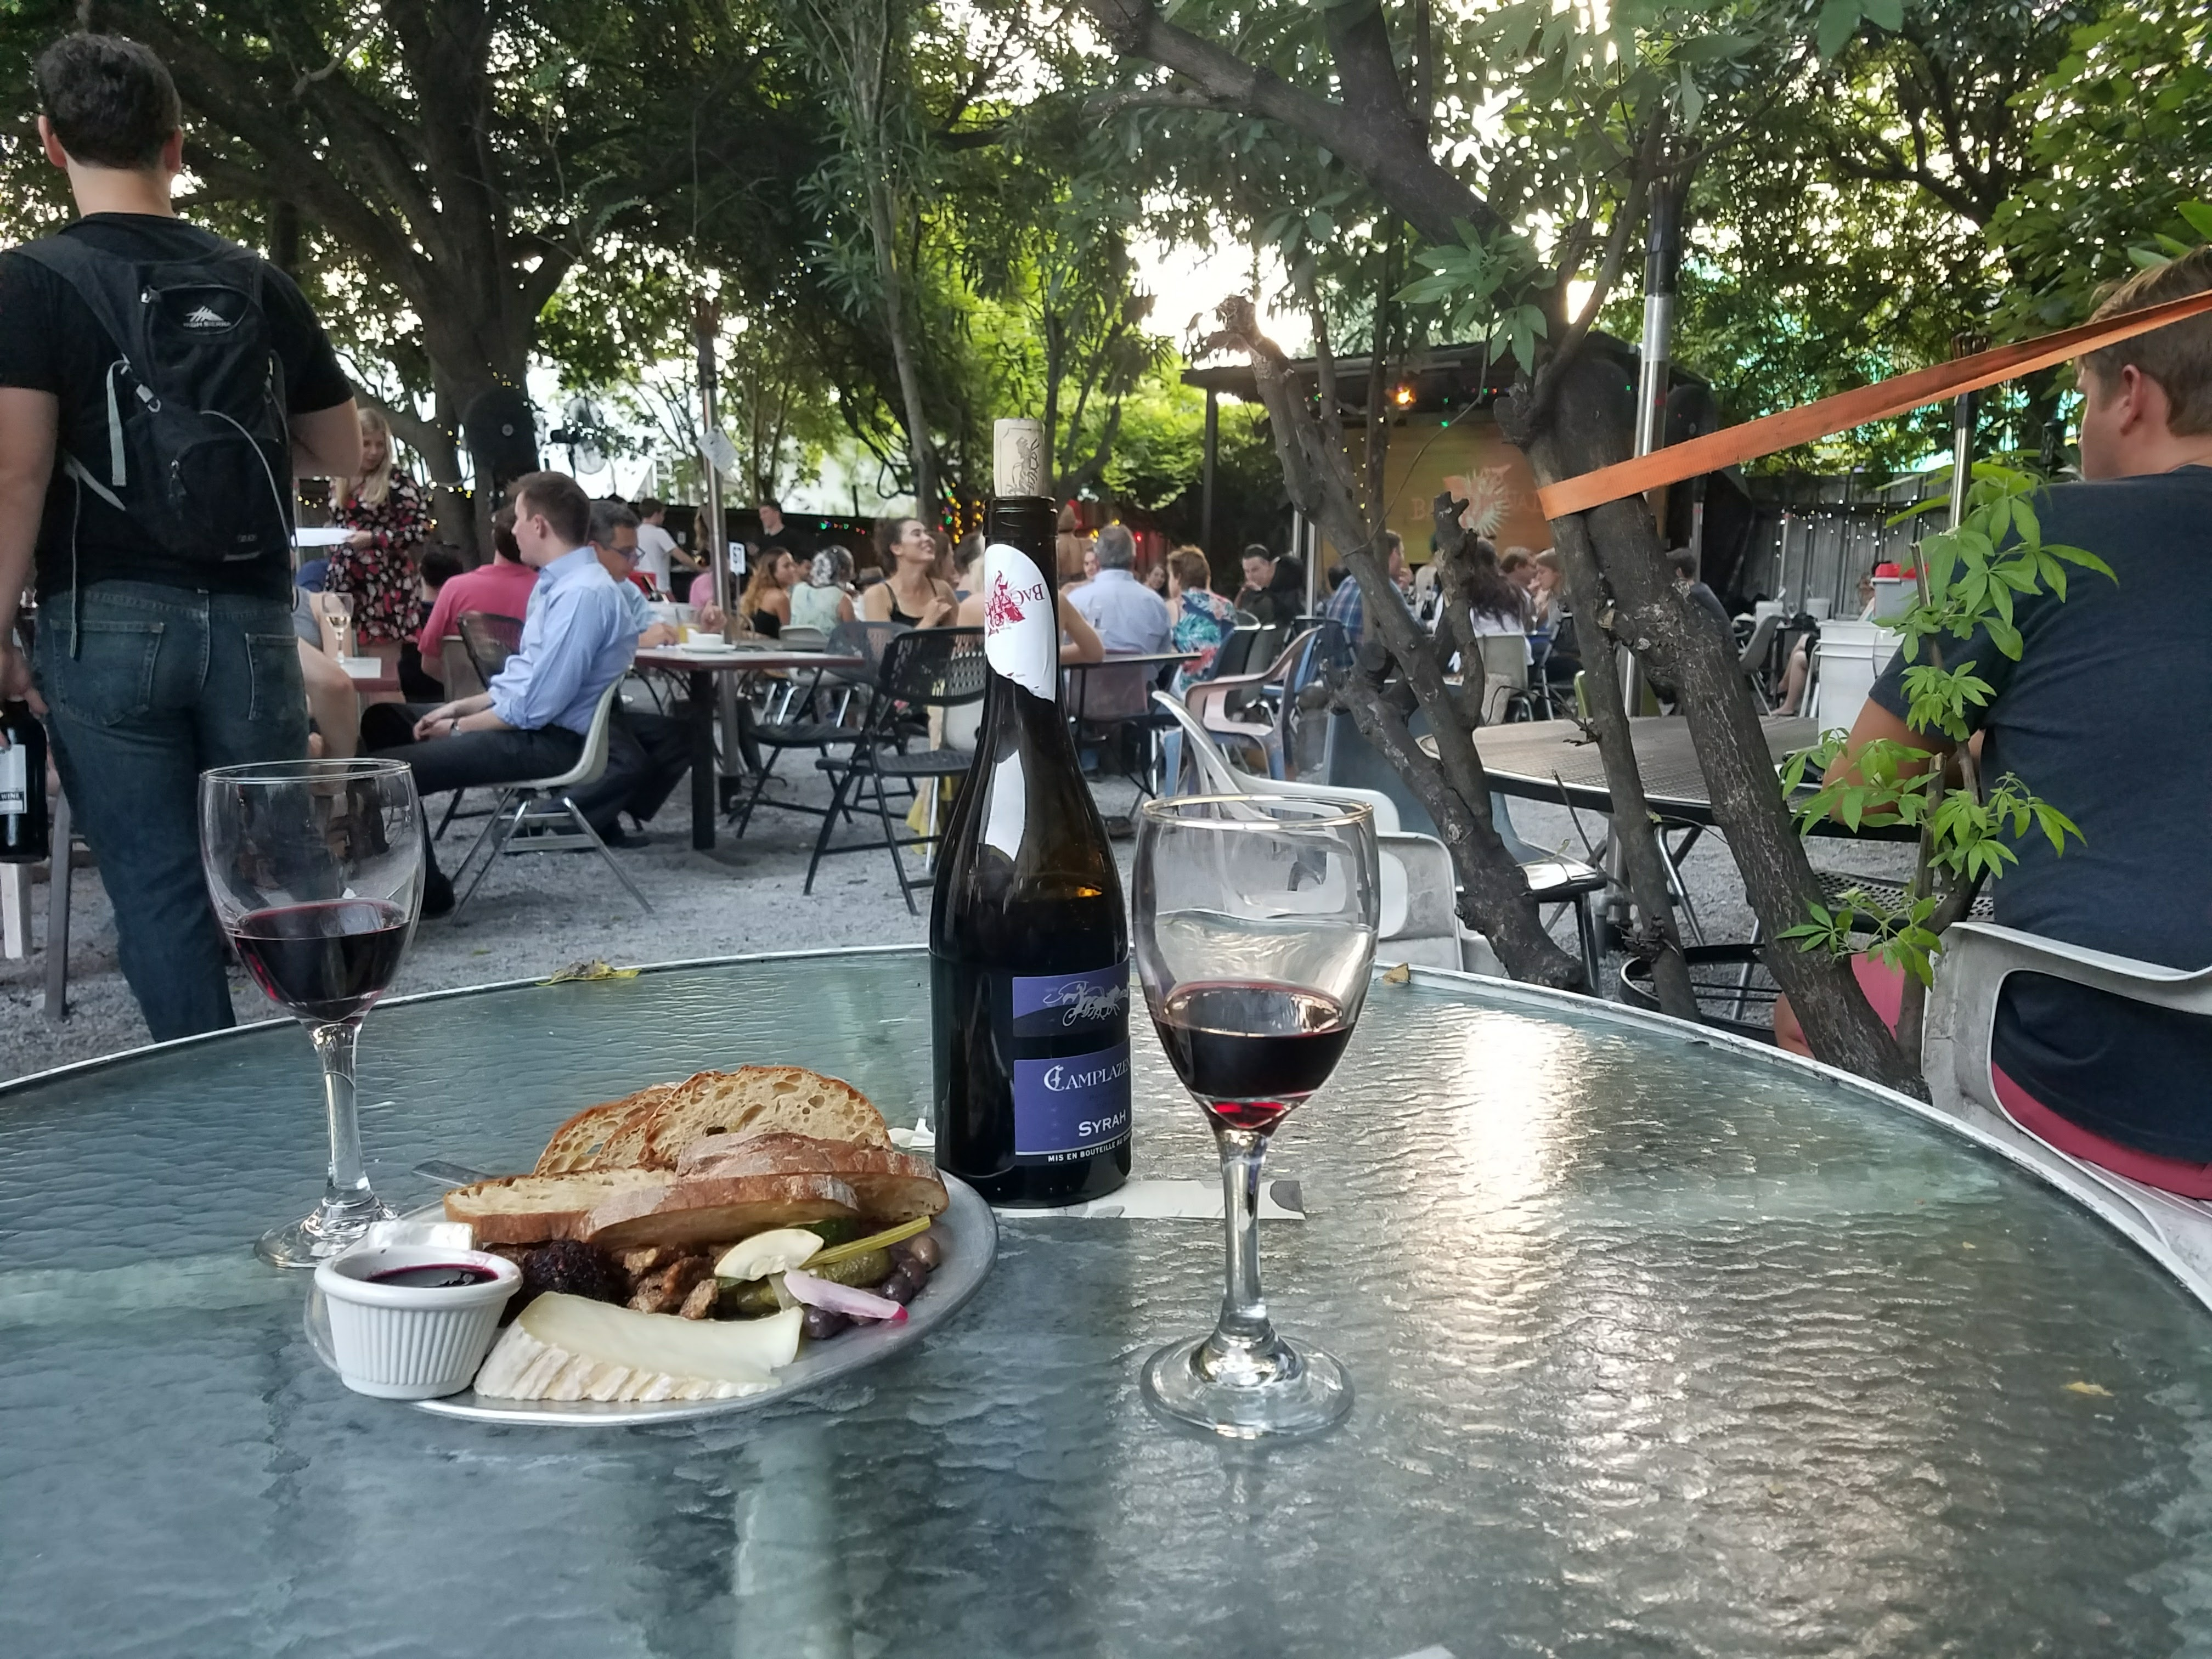 Bacchanal Wine is a cute wine bar in the Bywater/Marigny neighborhood in New Orleans. It has a great